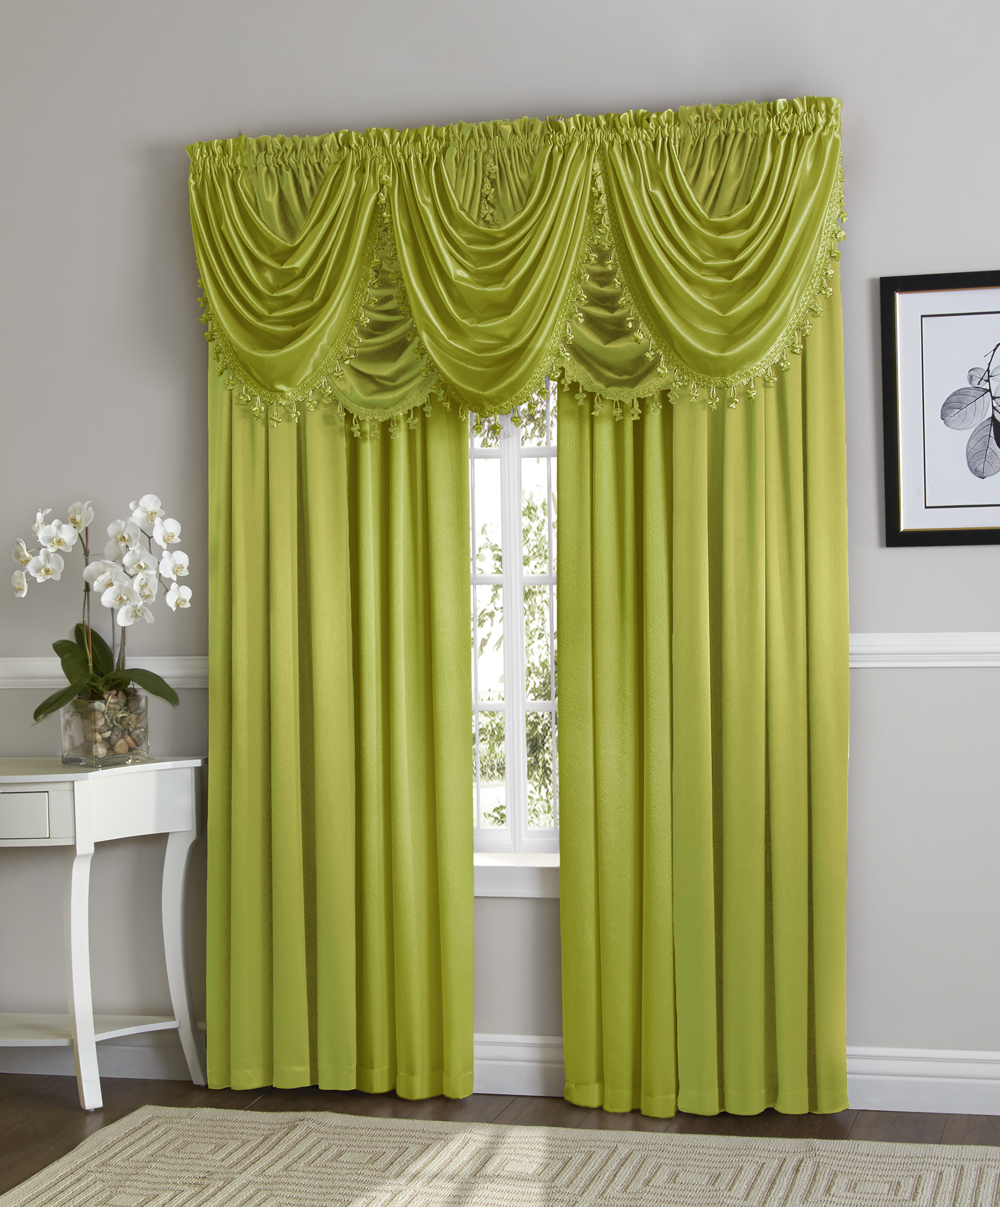 Hyatt Window Curtain & Fringed Valance Complete 9 Piece Window Treatment Set Lime by